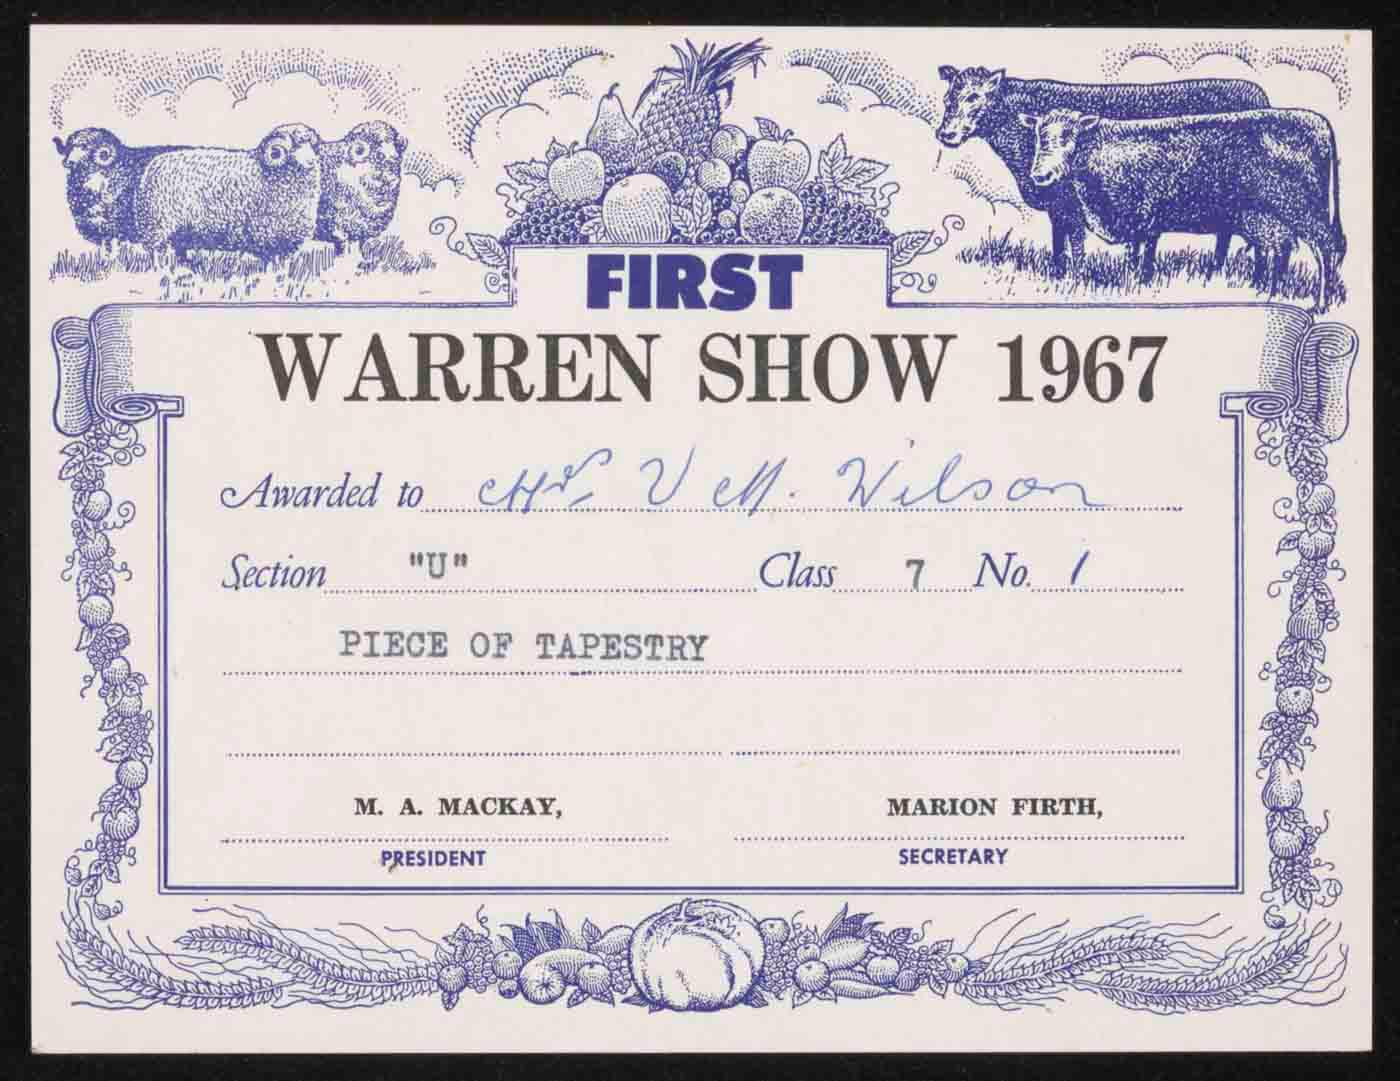 Warren Show First Prize certificate - click to view larger image